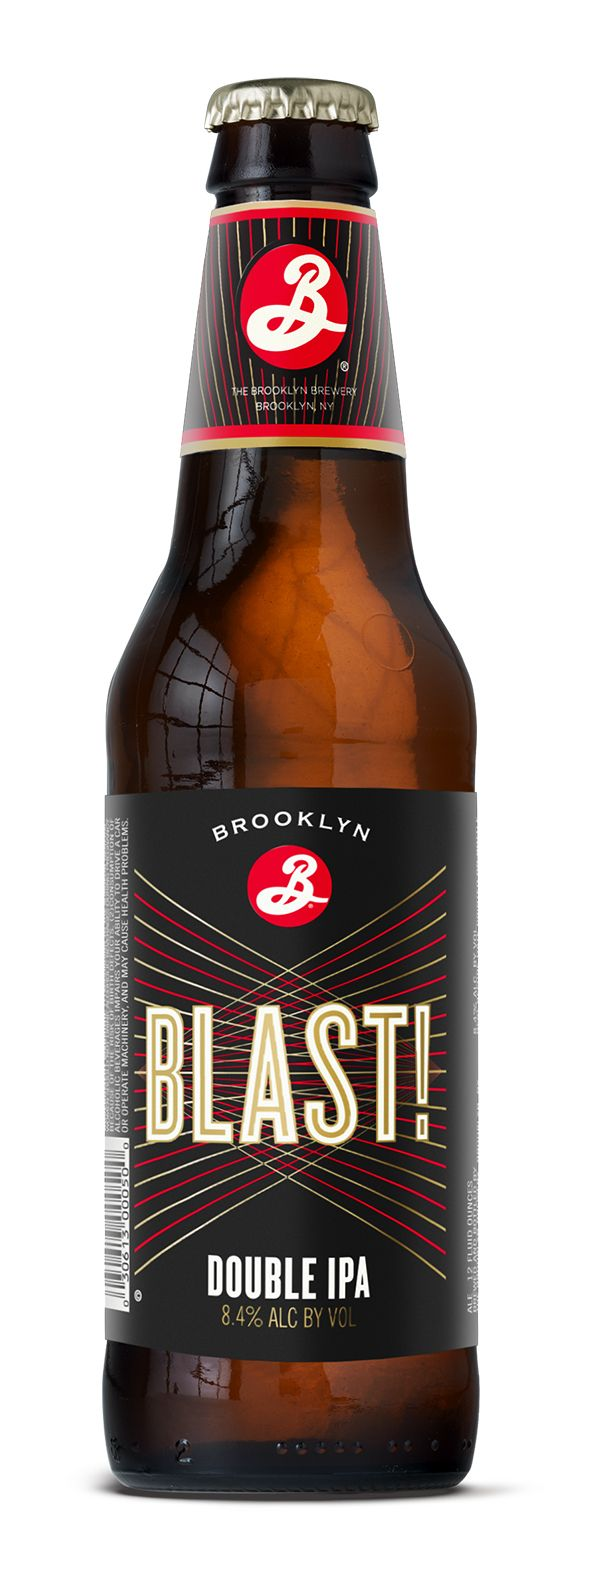 Milton Glaser creates new look for Brooklyn Brewery's BLAST! IPA